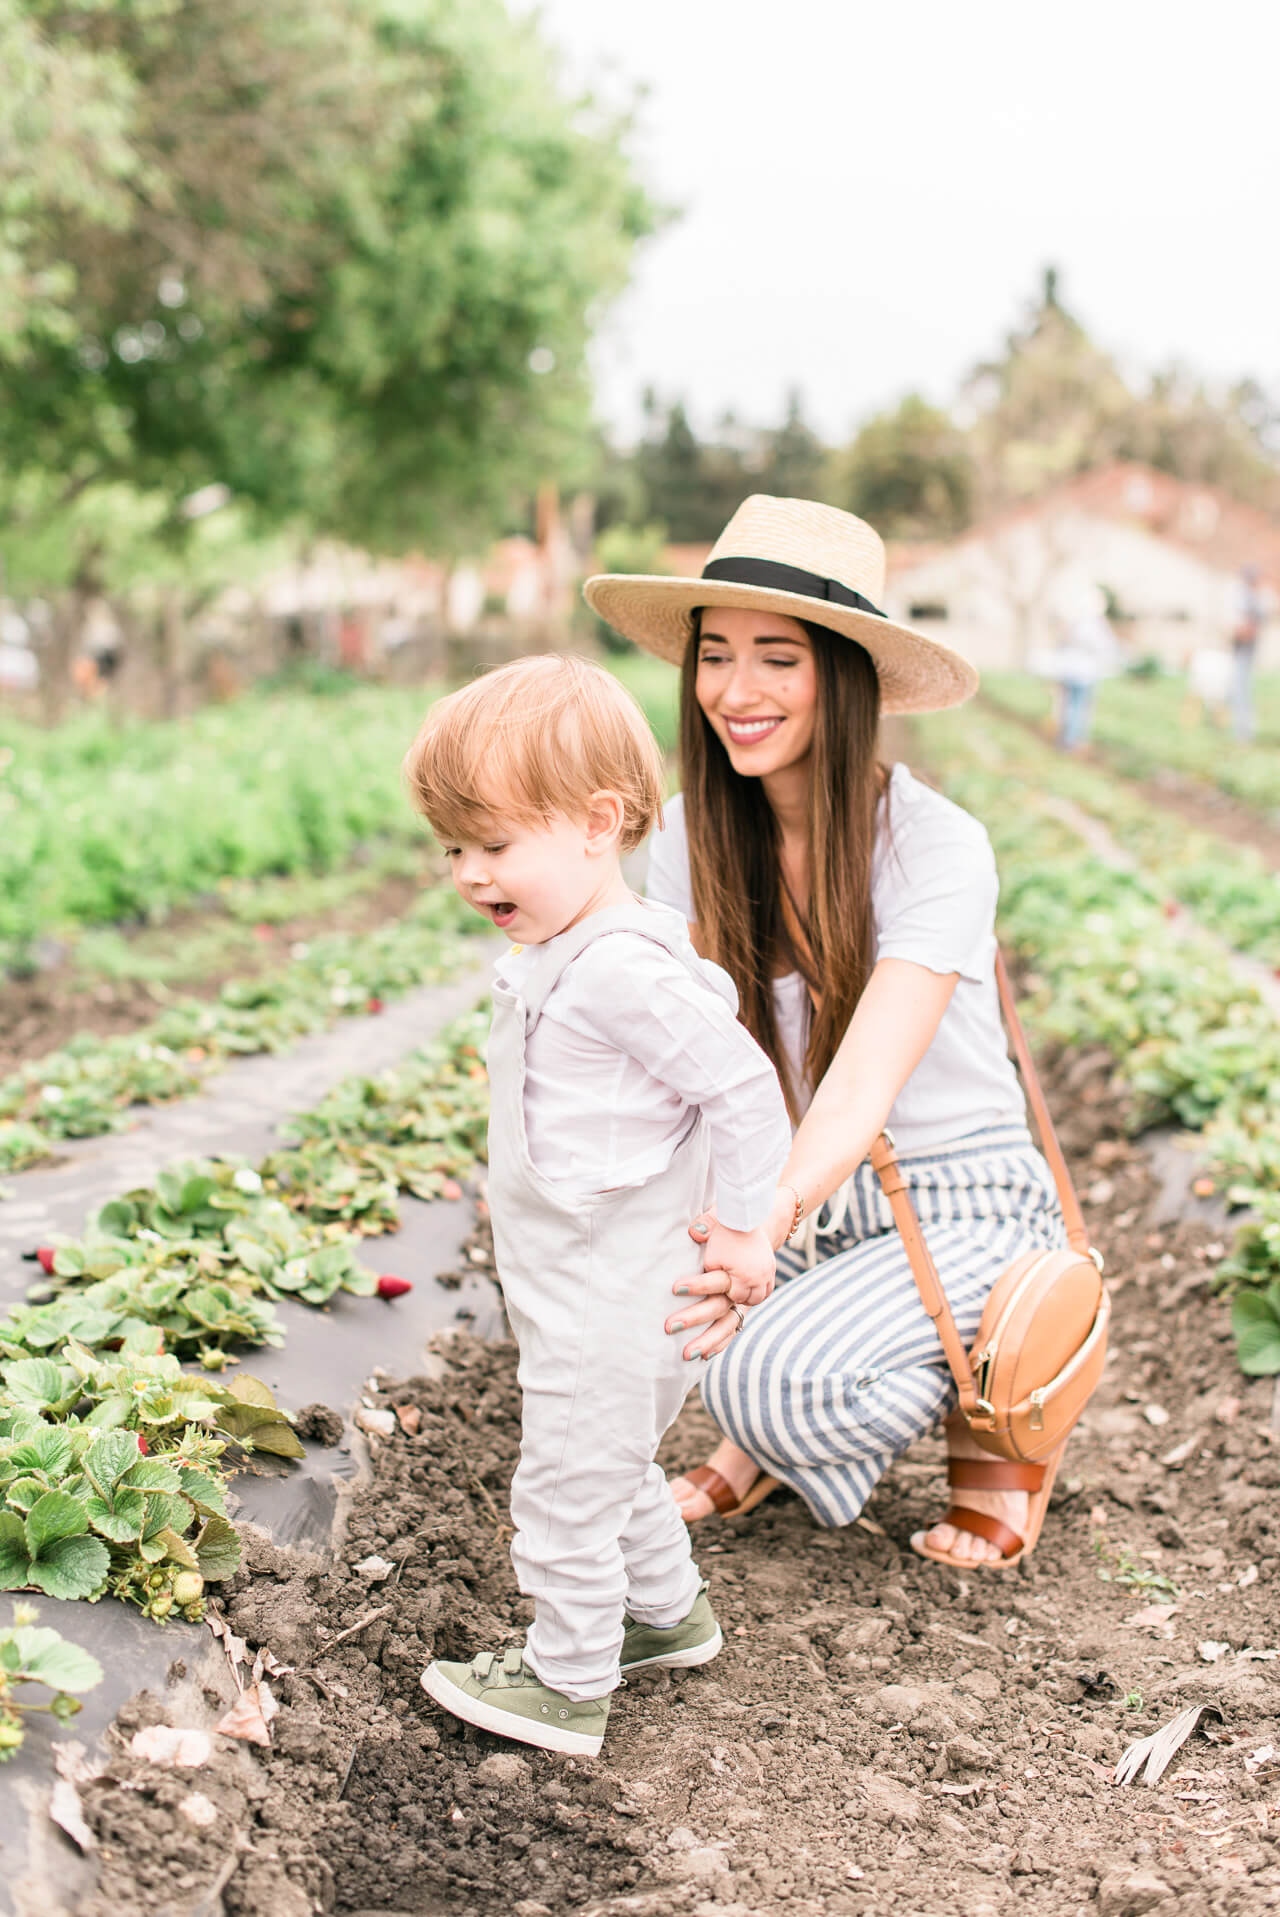 I loved visiting this adorable farm with my family this spring!